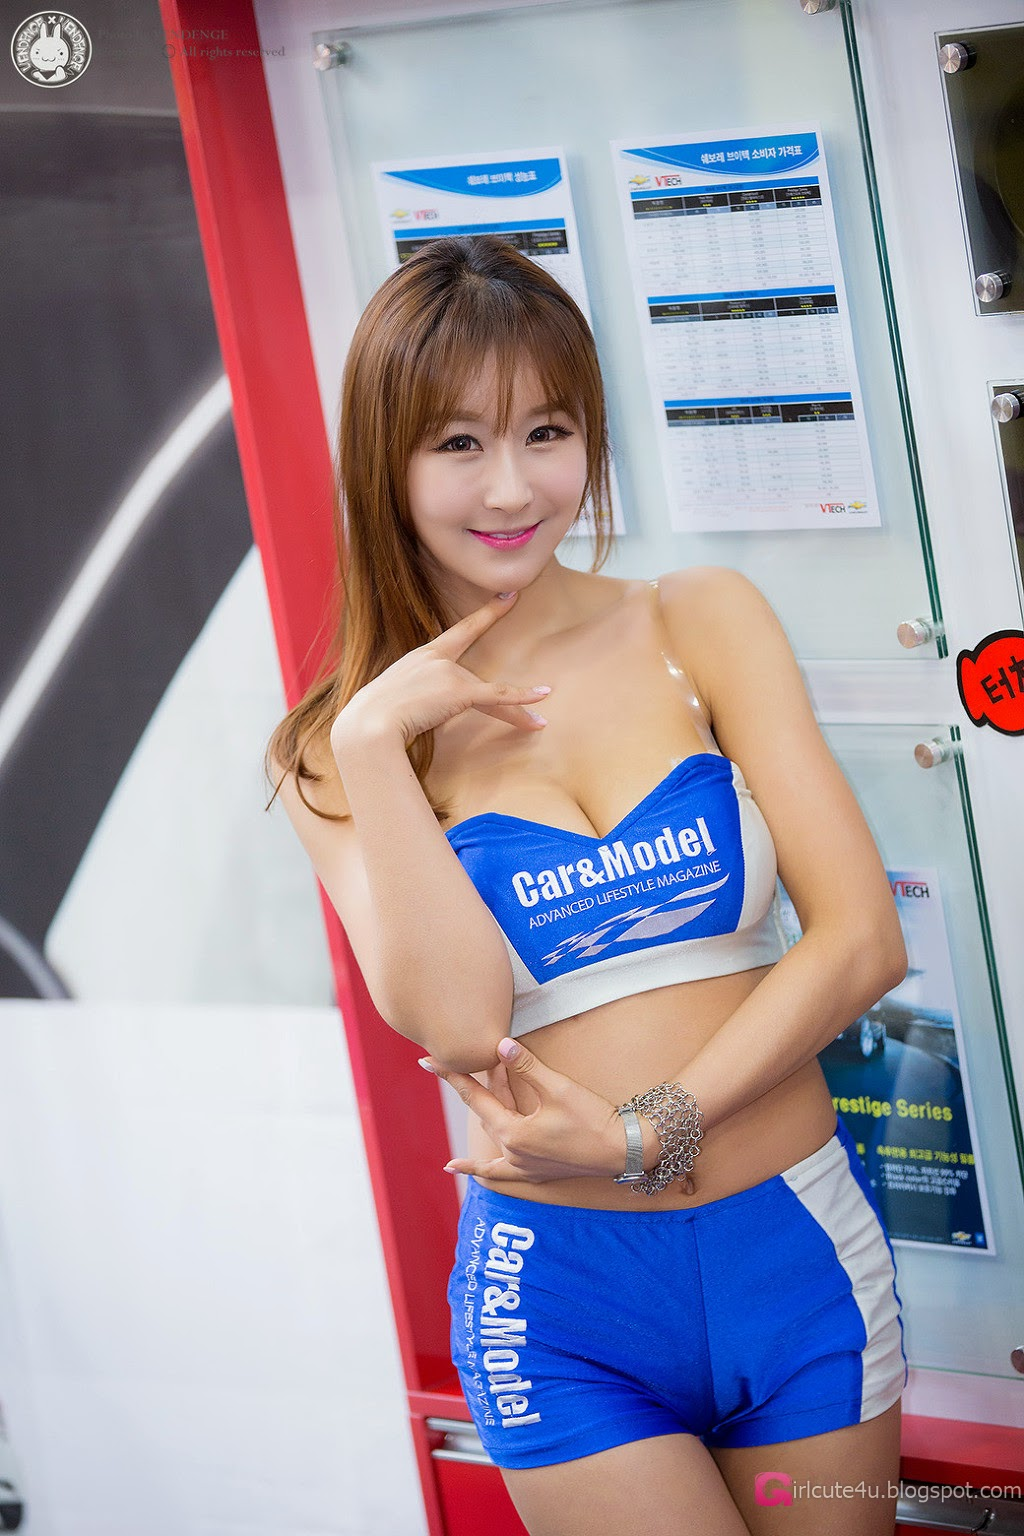 2 Seo Yoon Ah - Automotive Week - very cute asian girl-girlcute4u.blogspot.com